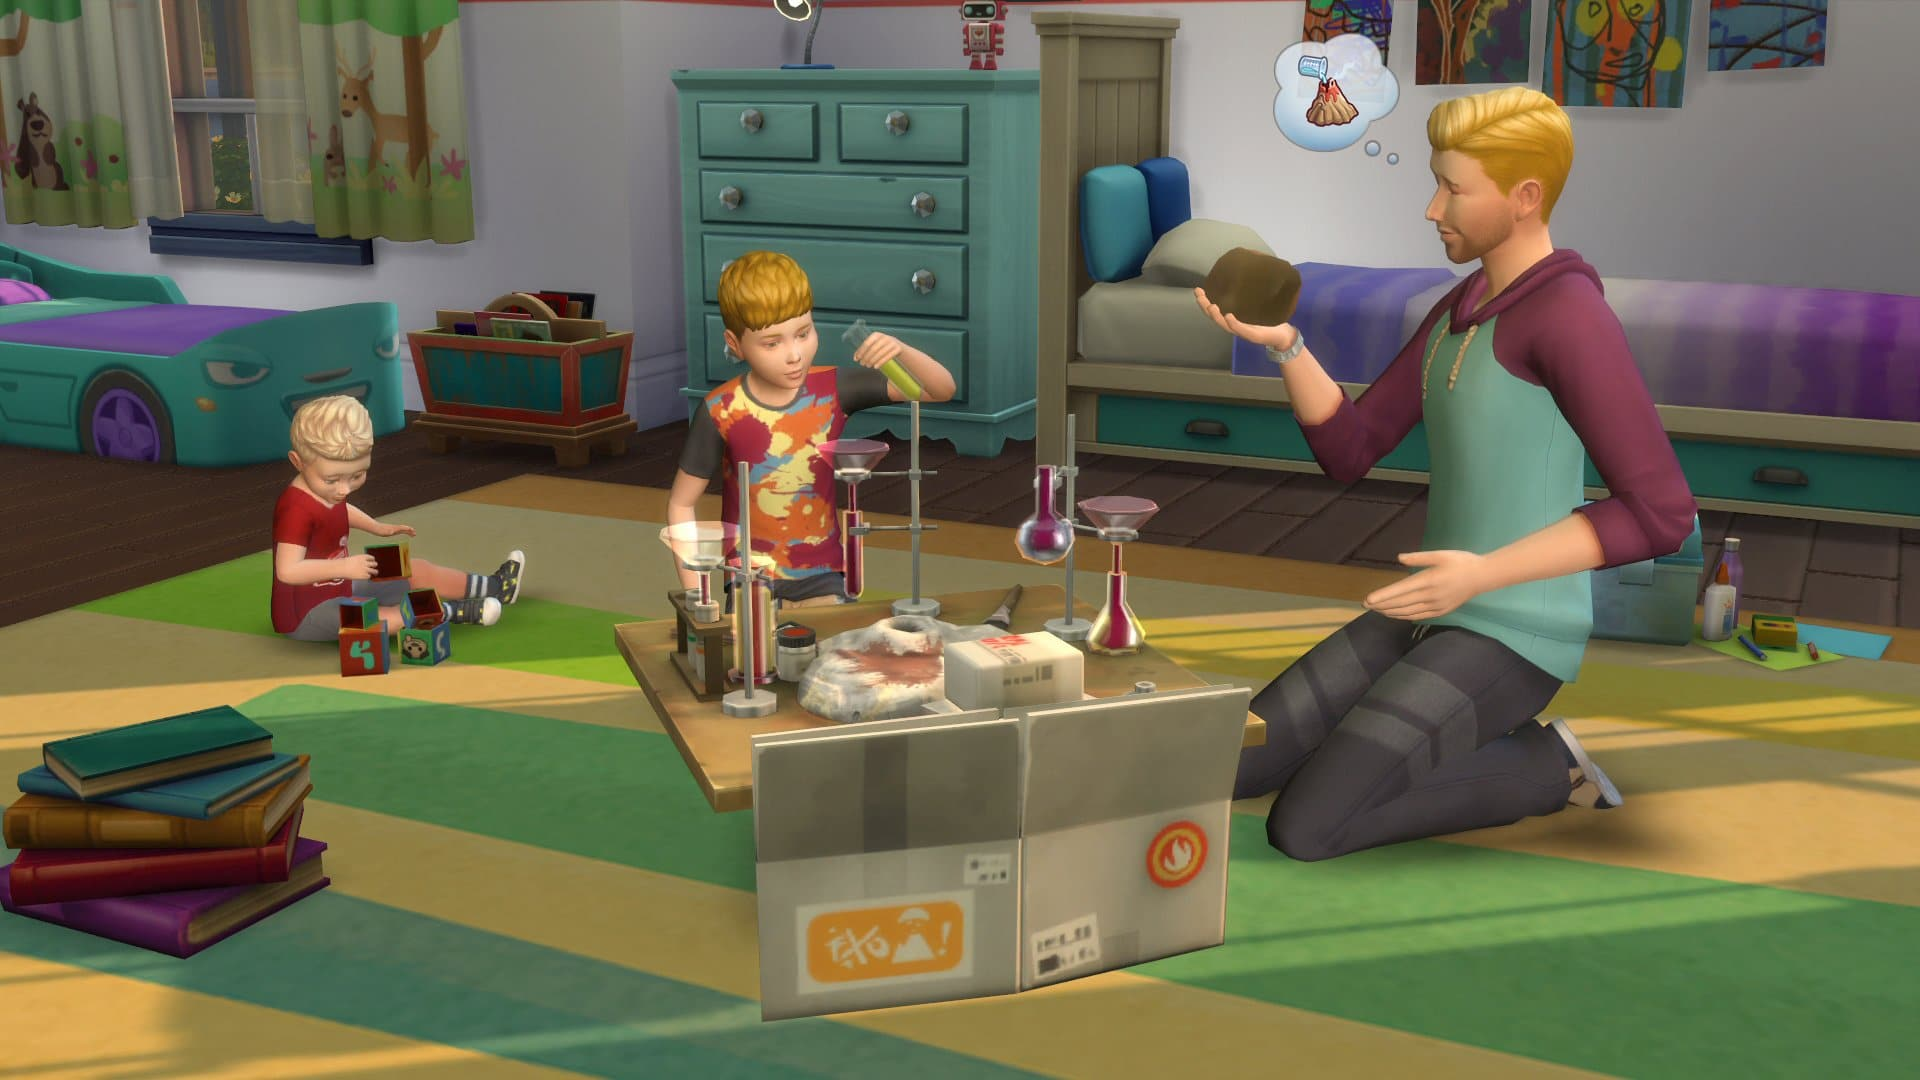 Les Sims 4 Etre Parents [30 Mai 2017] TS4_0208_GP05_BLOG_SCREEN_03_001